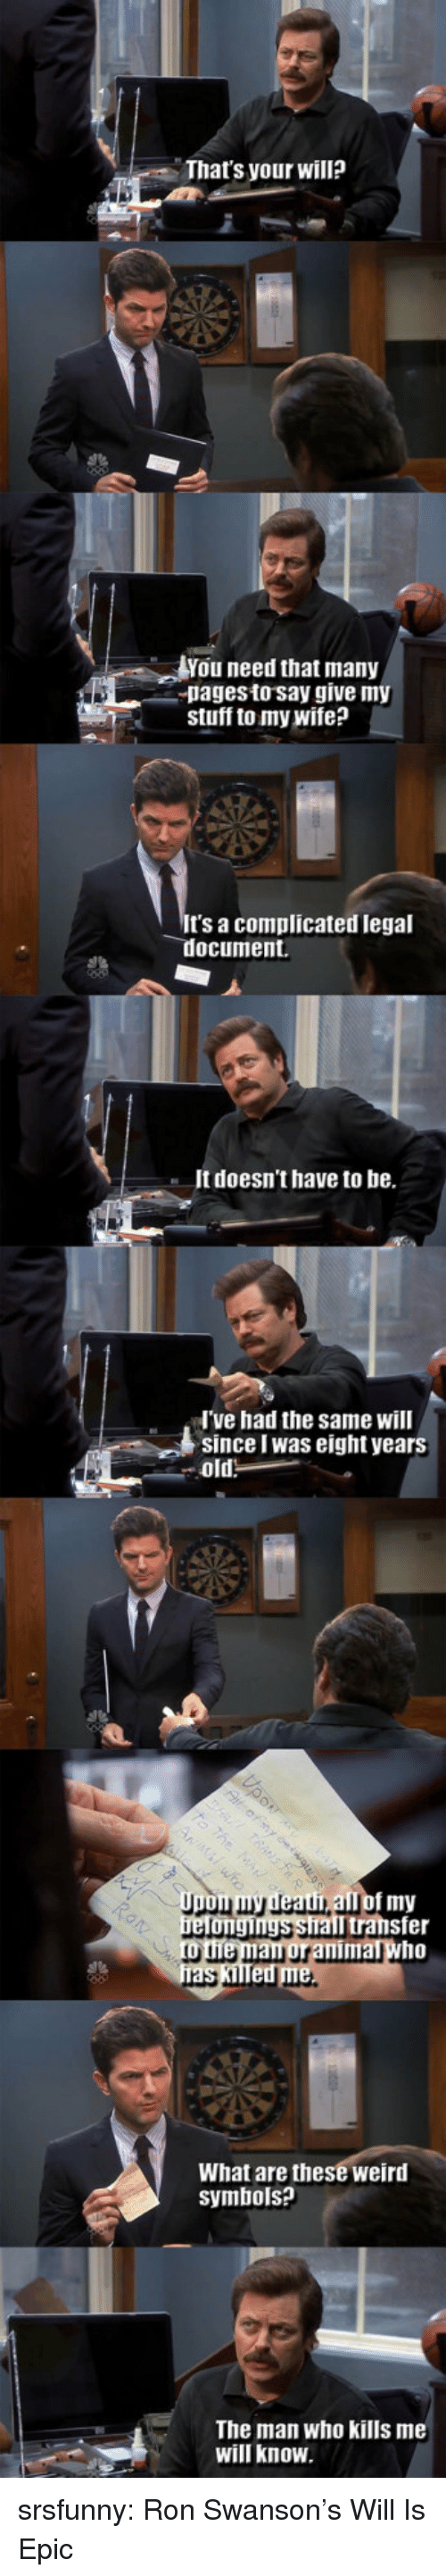 Ron Swanson, Tumblr, and Weird: That's your will?  You need that many  pagesto say give my  stuff to my wife?  t's a complicated legal  ocument.  It doesn't have to be.  ve had the same will  Since I was eight years  all of my  Il transfer  What are these weird  symbols?  The man who kills me  will know srsfunny:  Ron Swanson's Will Is Epic